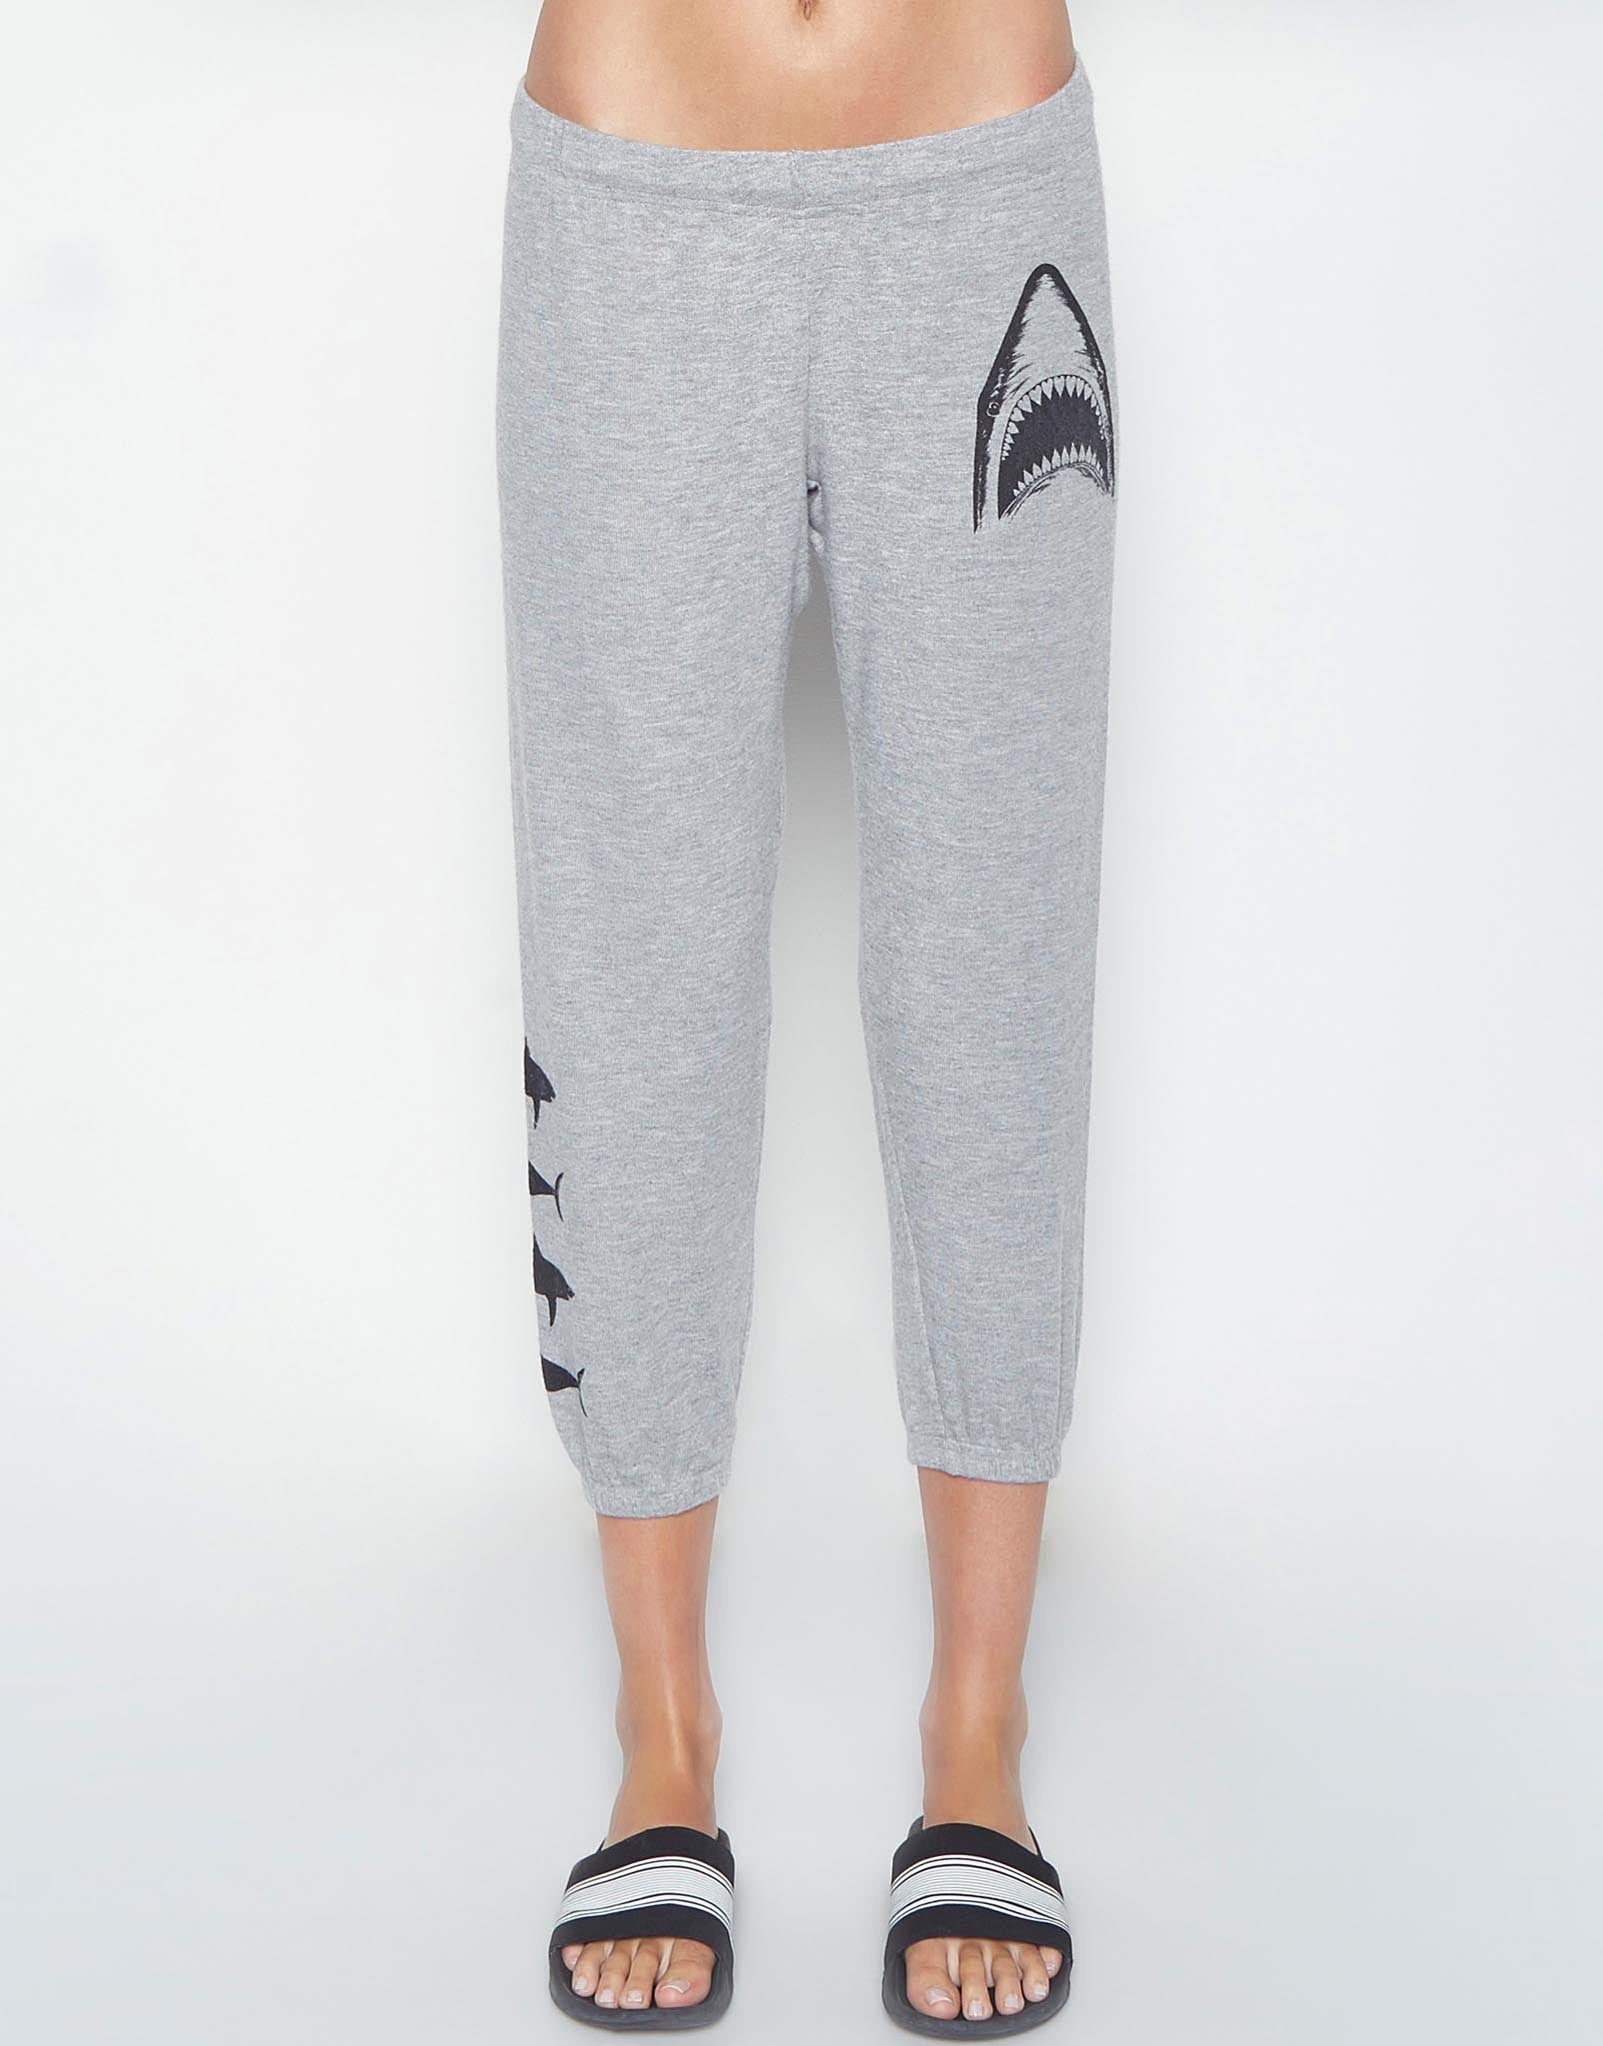 Lauren Moshi Women's Alana Shark Leg Crop Sweat Pant - Heather Grey